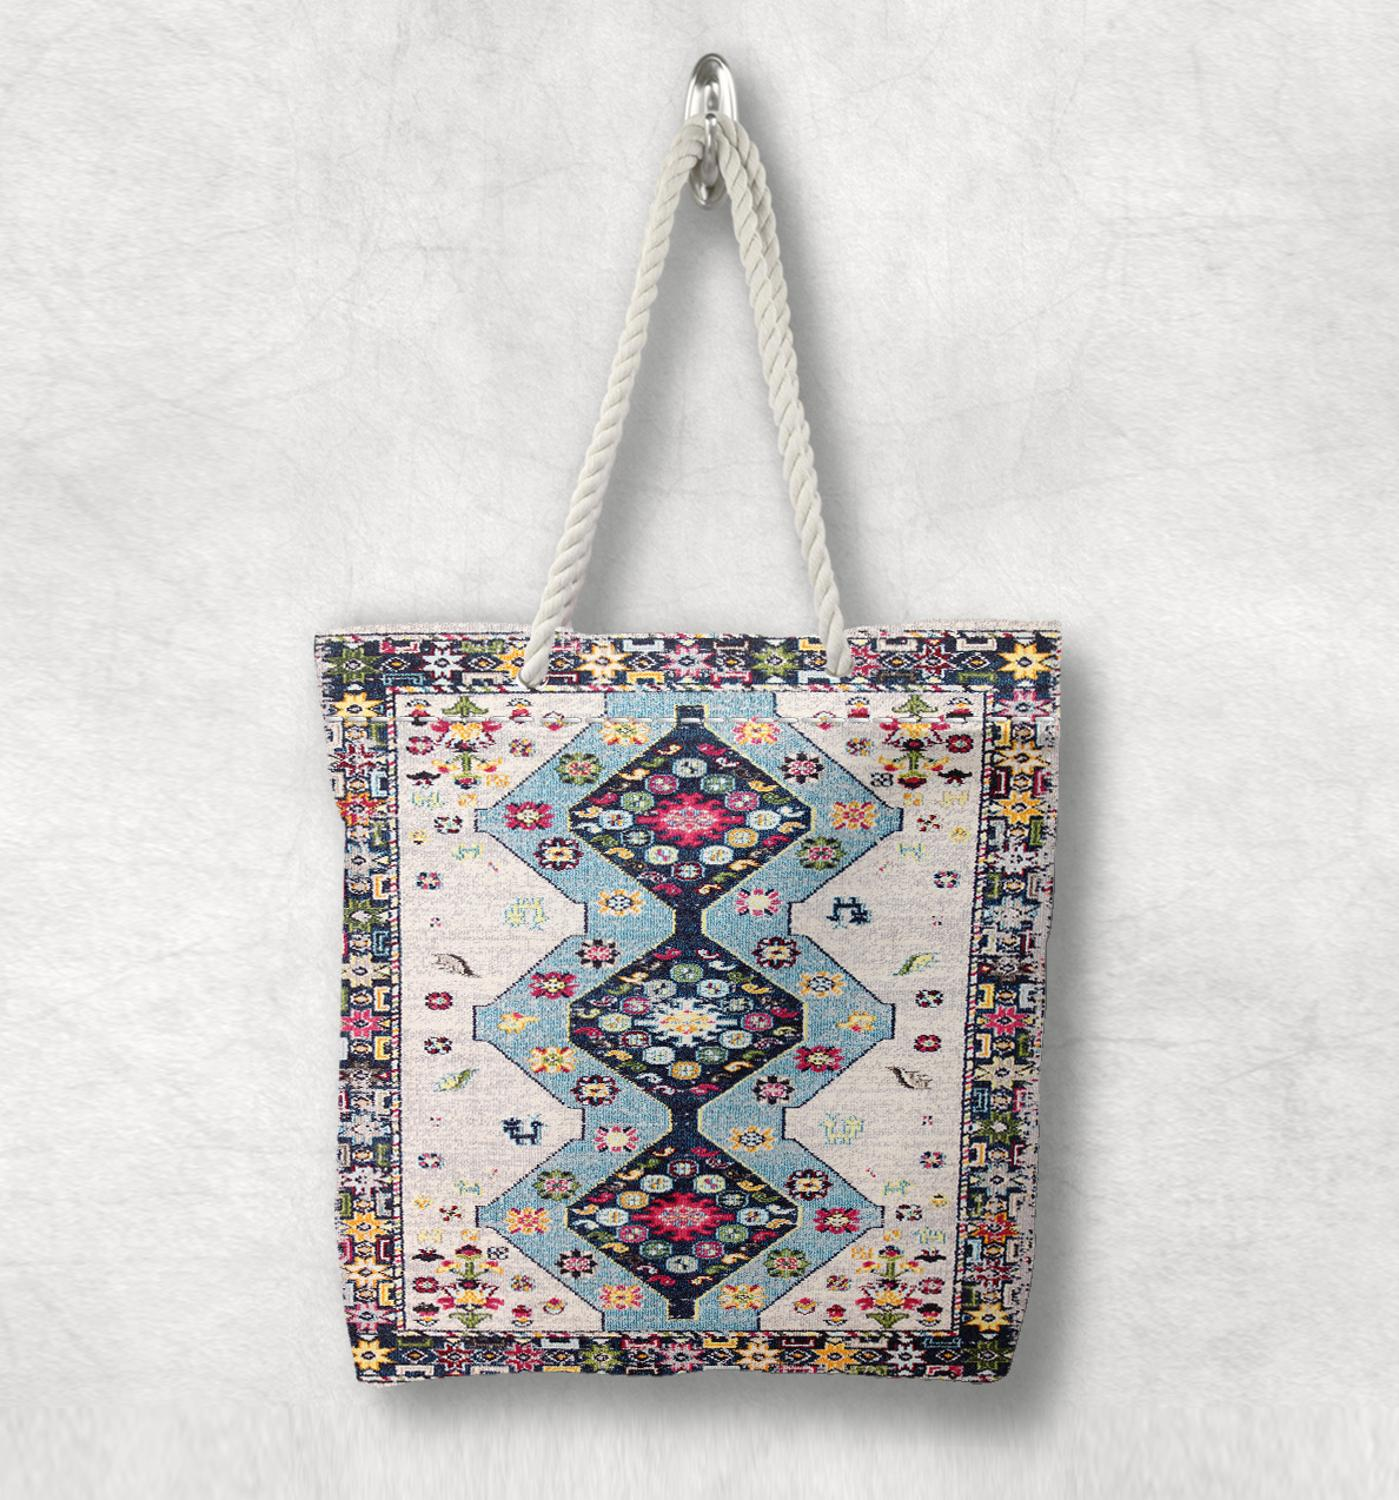 Else Blue Red Tiles Geometric Antique Anatolia Turkish White Rope Handle Canvas Bag Cotton Canvas Zippered Tote Bag Shoulder Bag